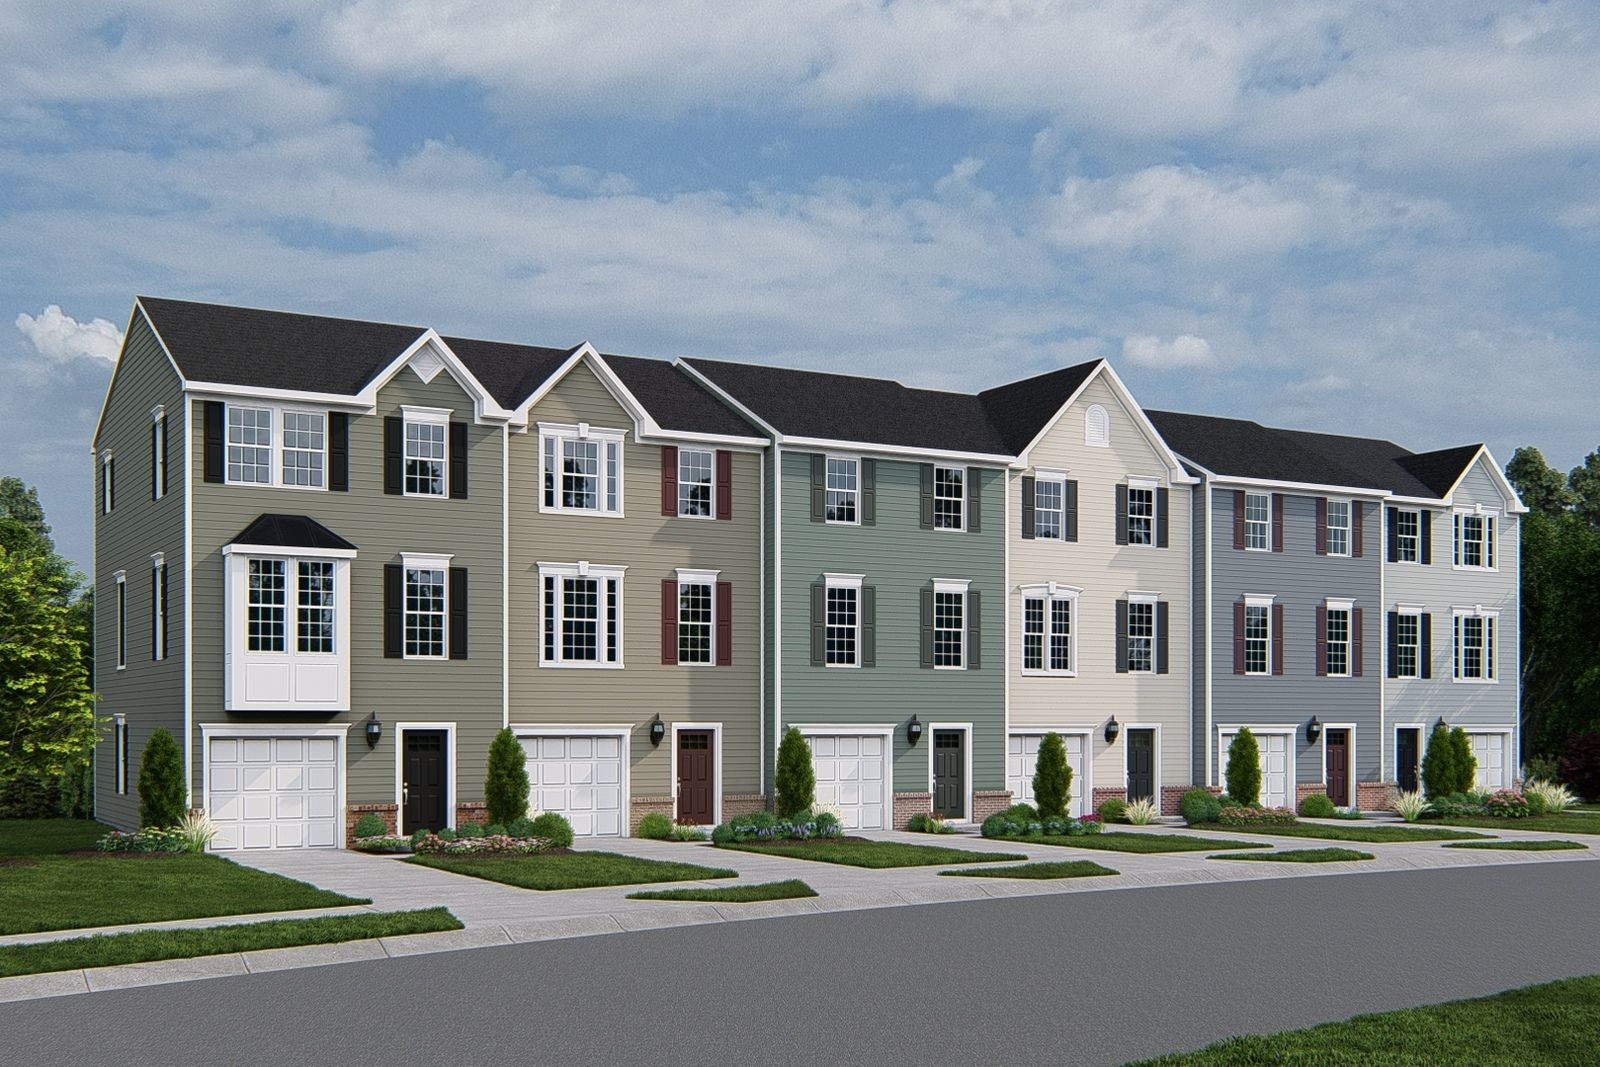 Own up to 4 bedrooms with a private yard less than 1 mile to I-540. From mid $300s:Best value for a new townhome in the area,join the VIP list!